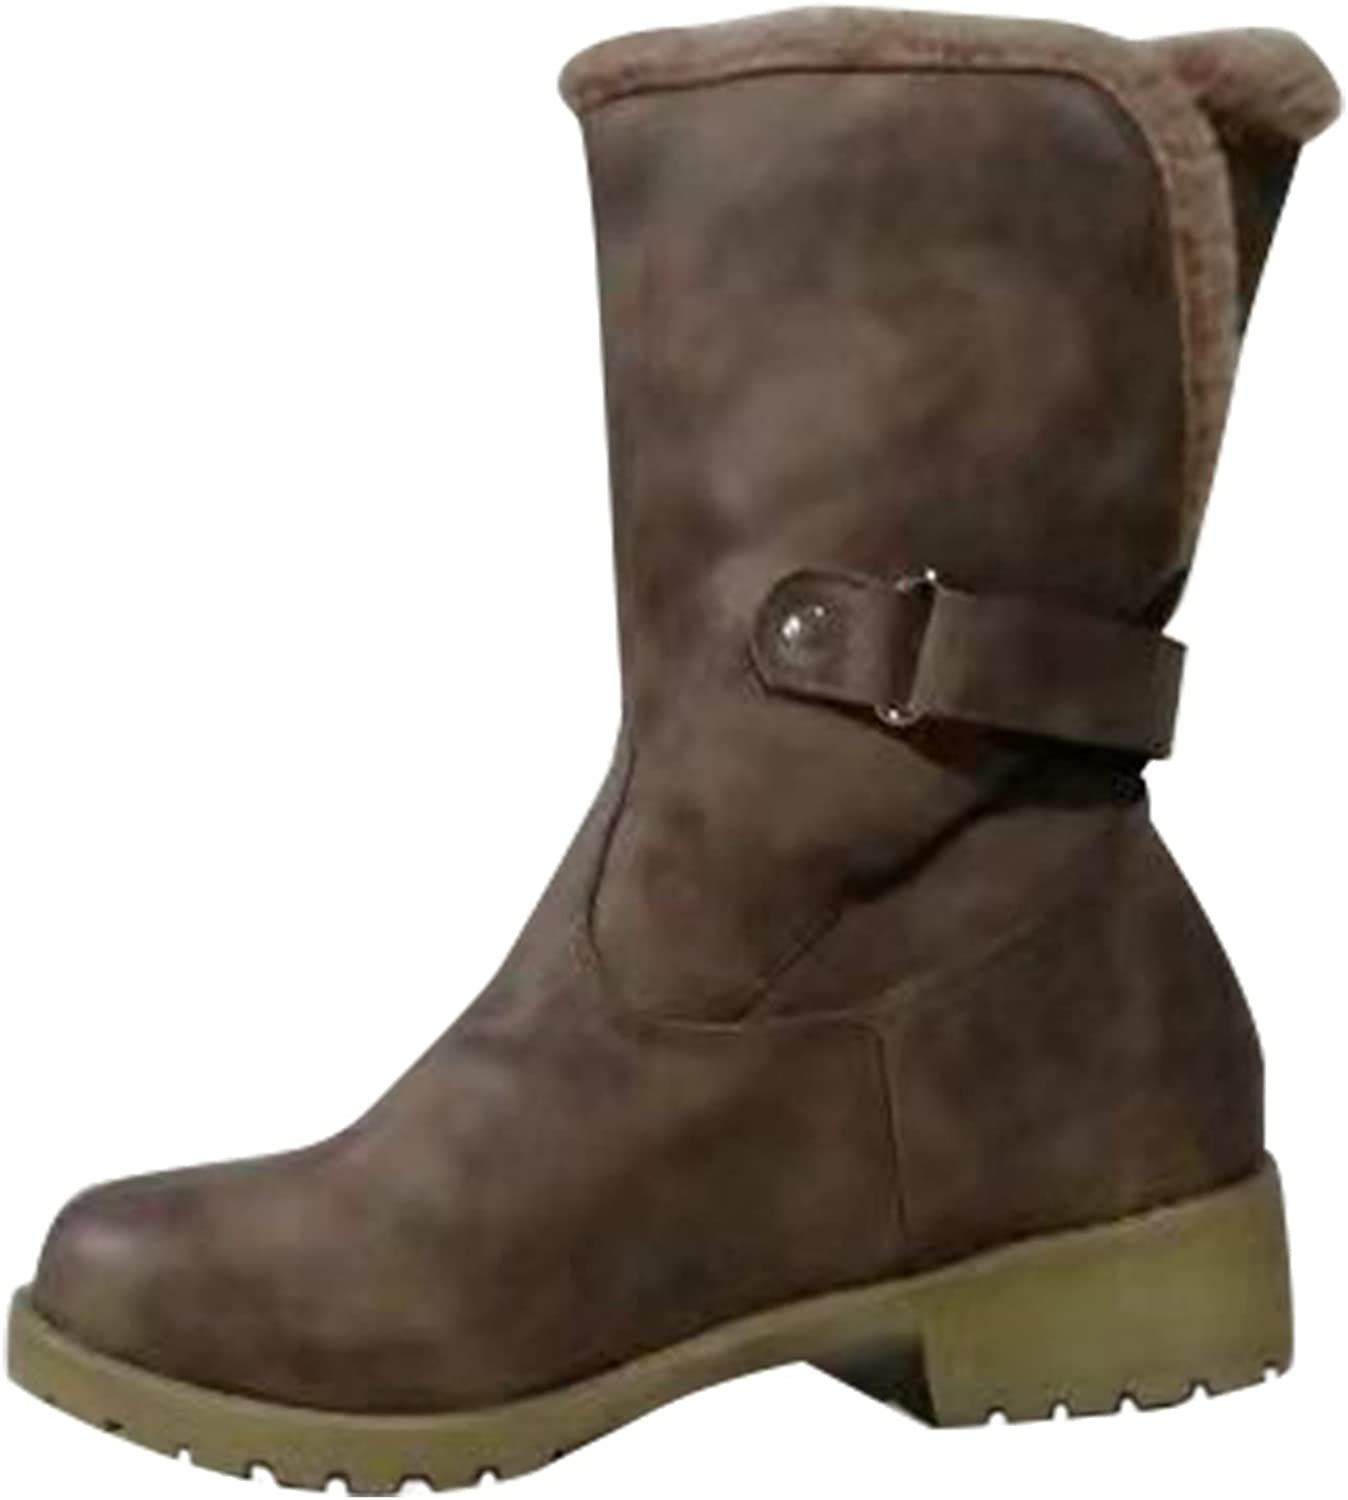 Women's Snow Boots Winter Warm Comfort Low-heeled Warm Low-top Wrapping Snow Boots